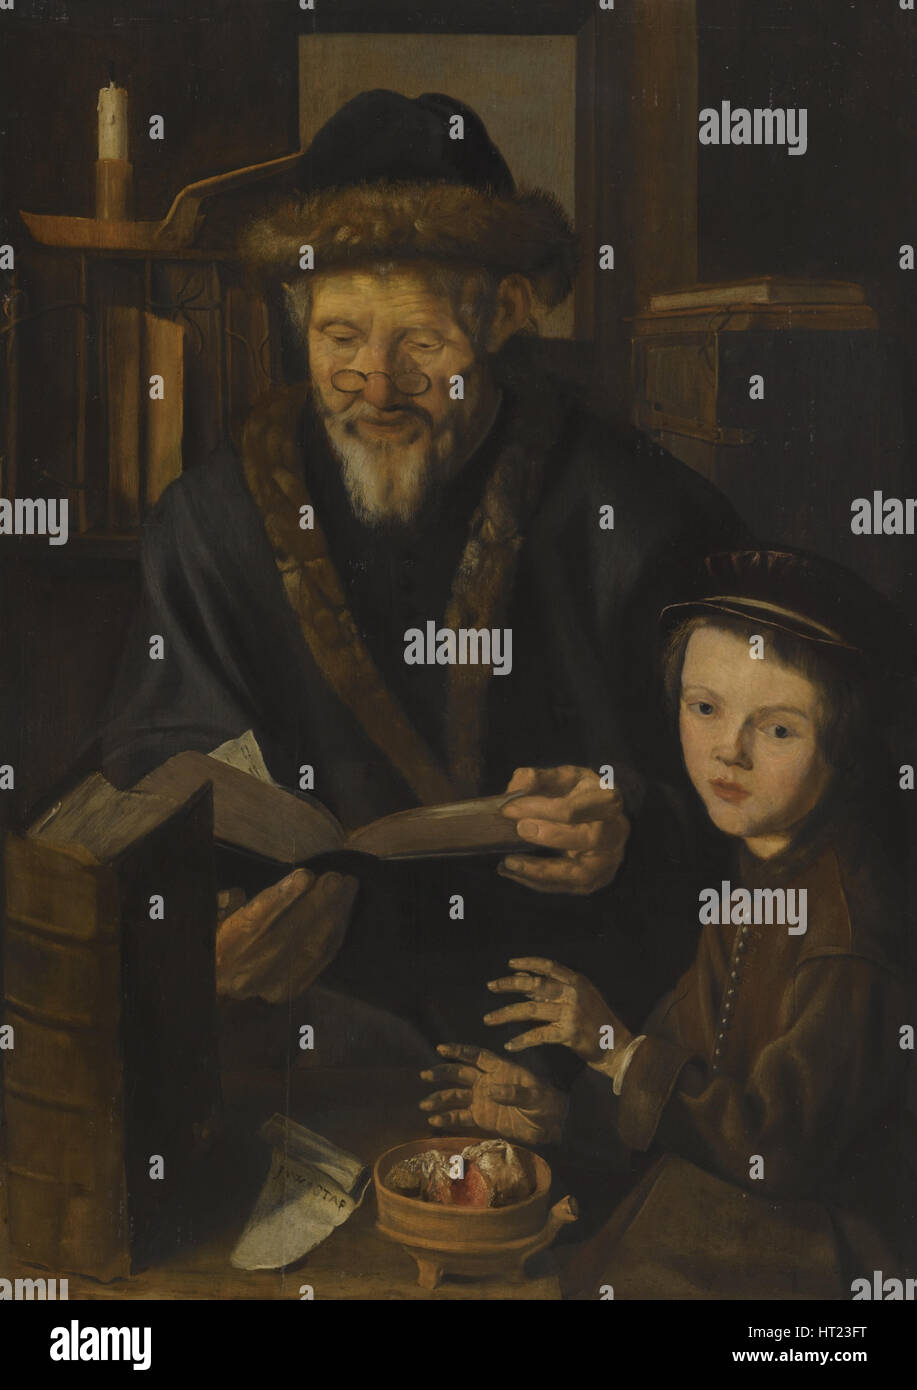 Philosopher and the Young Child. Artist: Woutersz., called Stap, Jan (1599-1663) - Stock Image